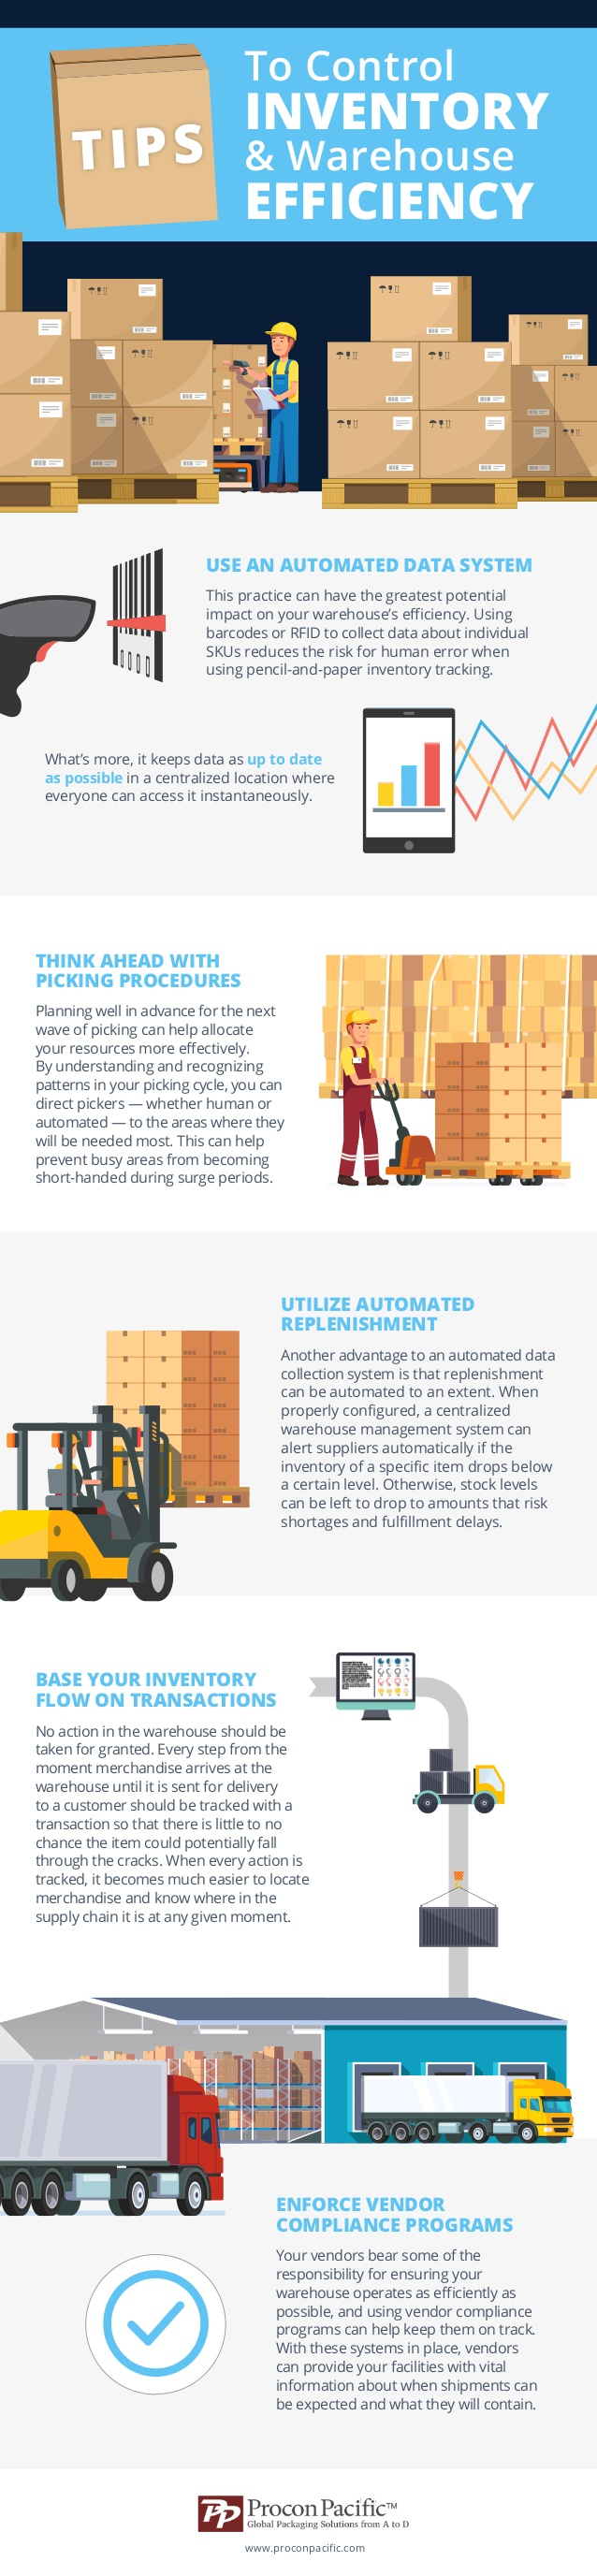 Controlling Your Inventory and Warehouse Efficiency